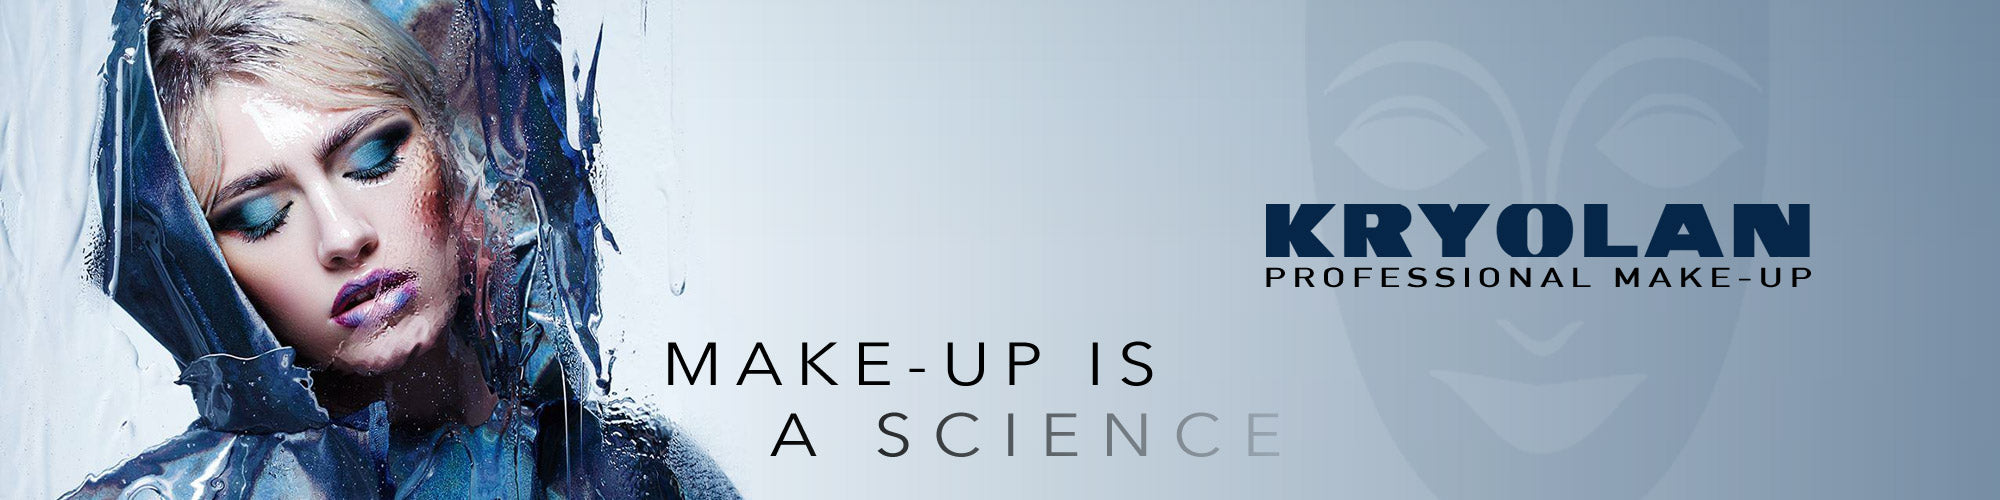 Kryolan Professional Makeup - Make-Up is a science